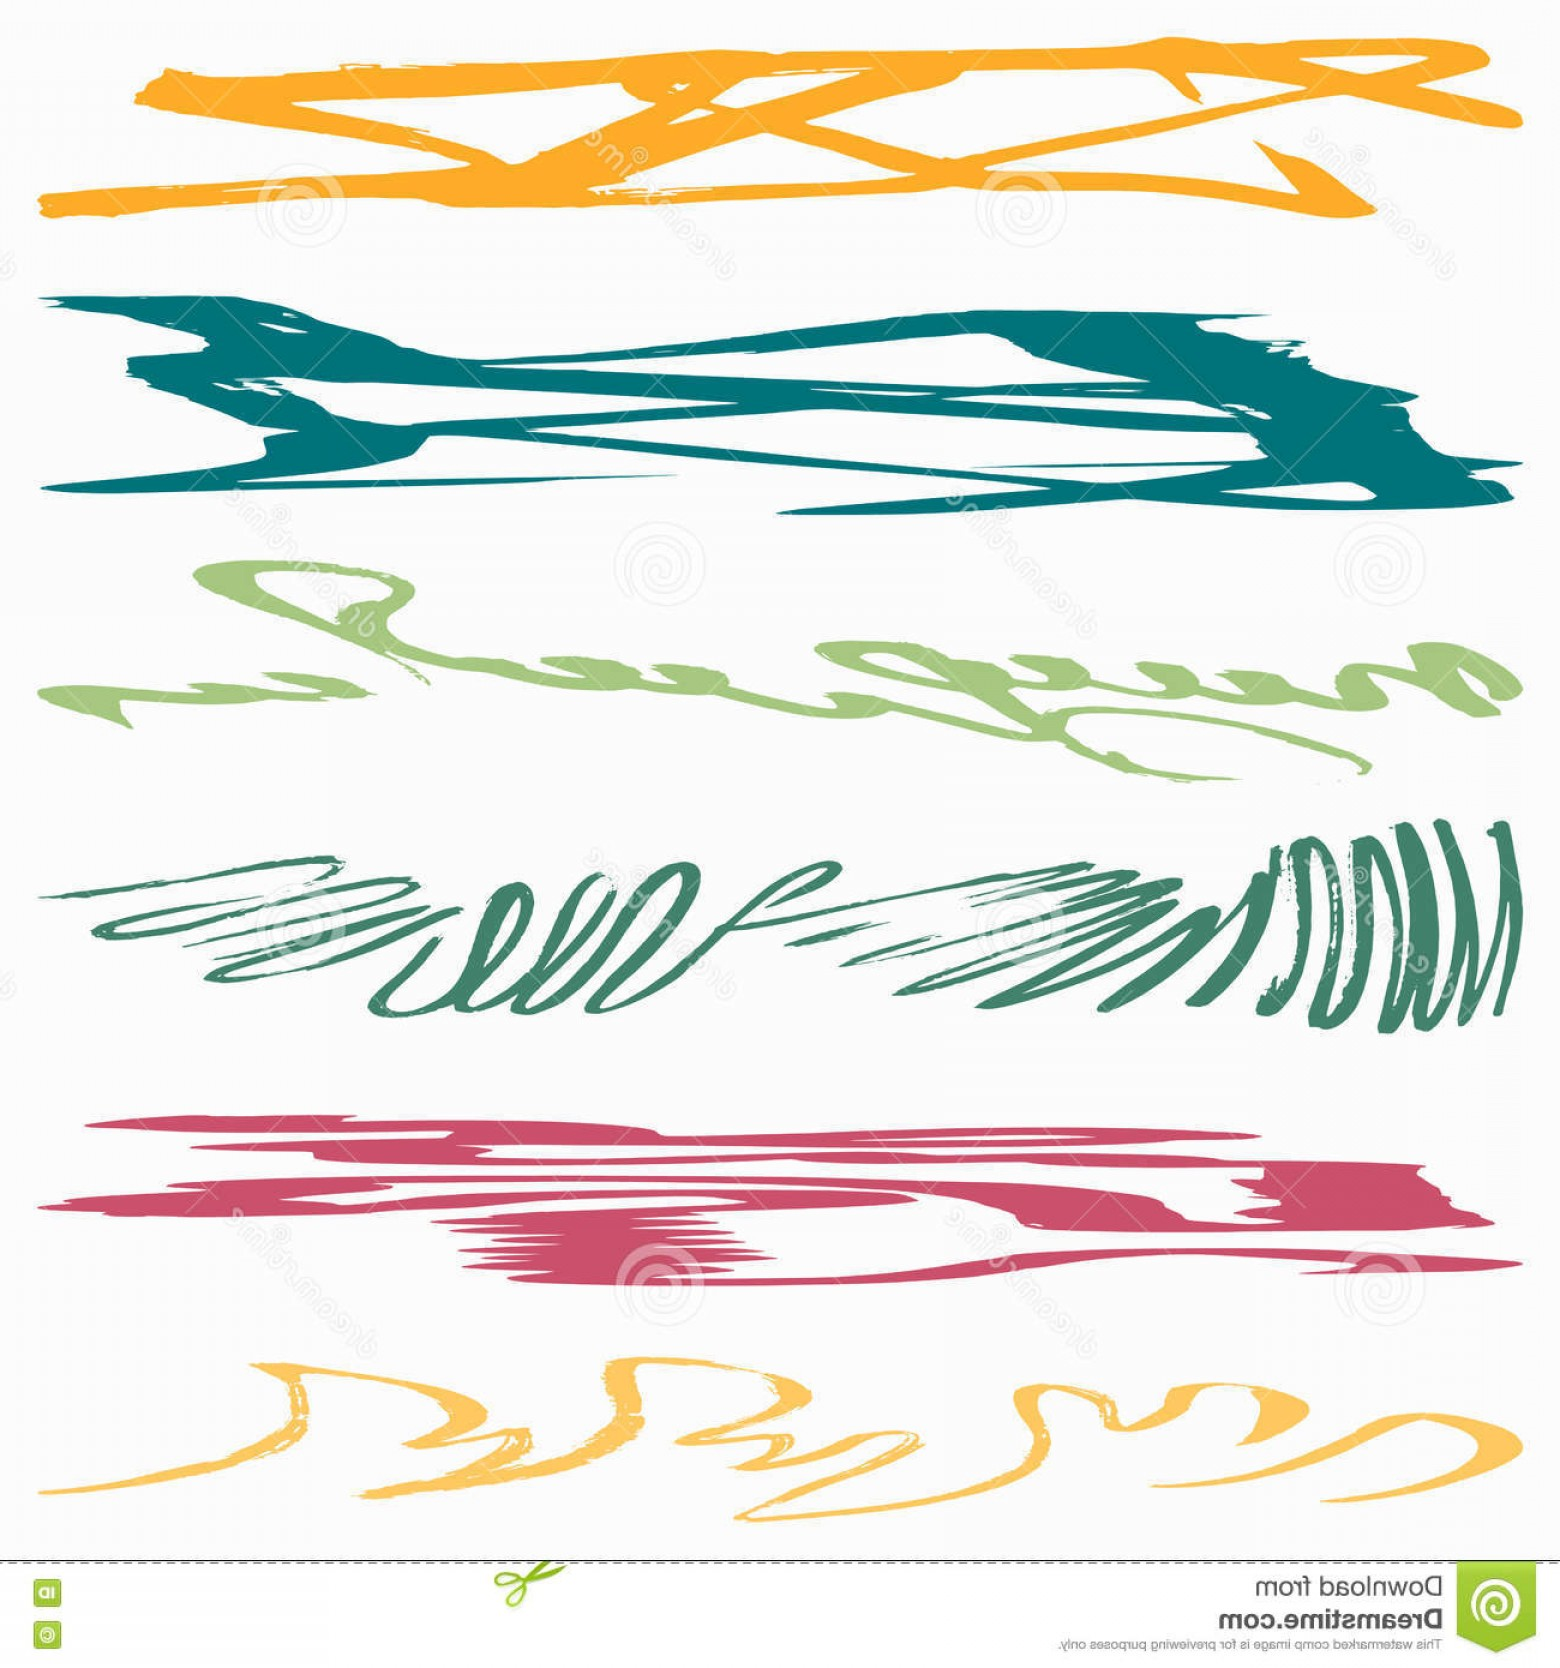 Graffiti Lines Vector: Stock Illustration Graffiti Abstract Color Lines Vector Eps Image